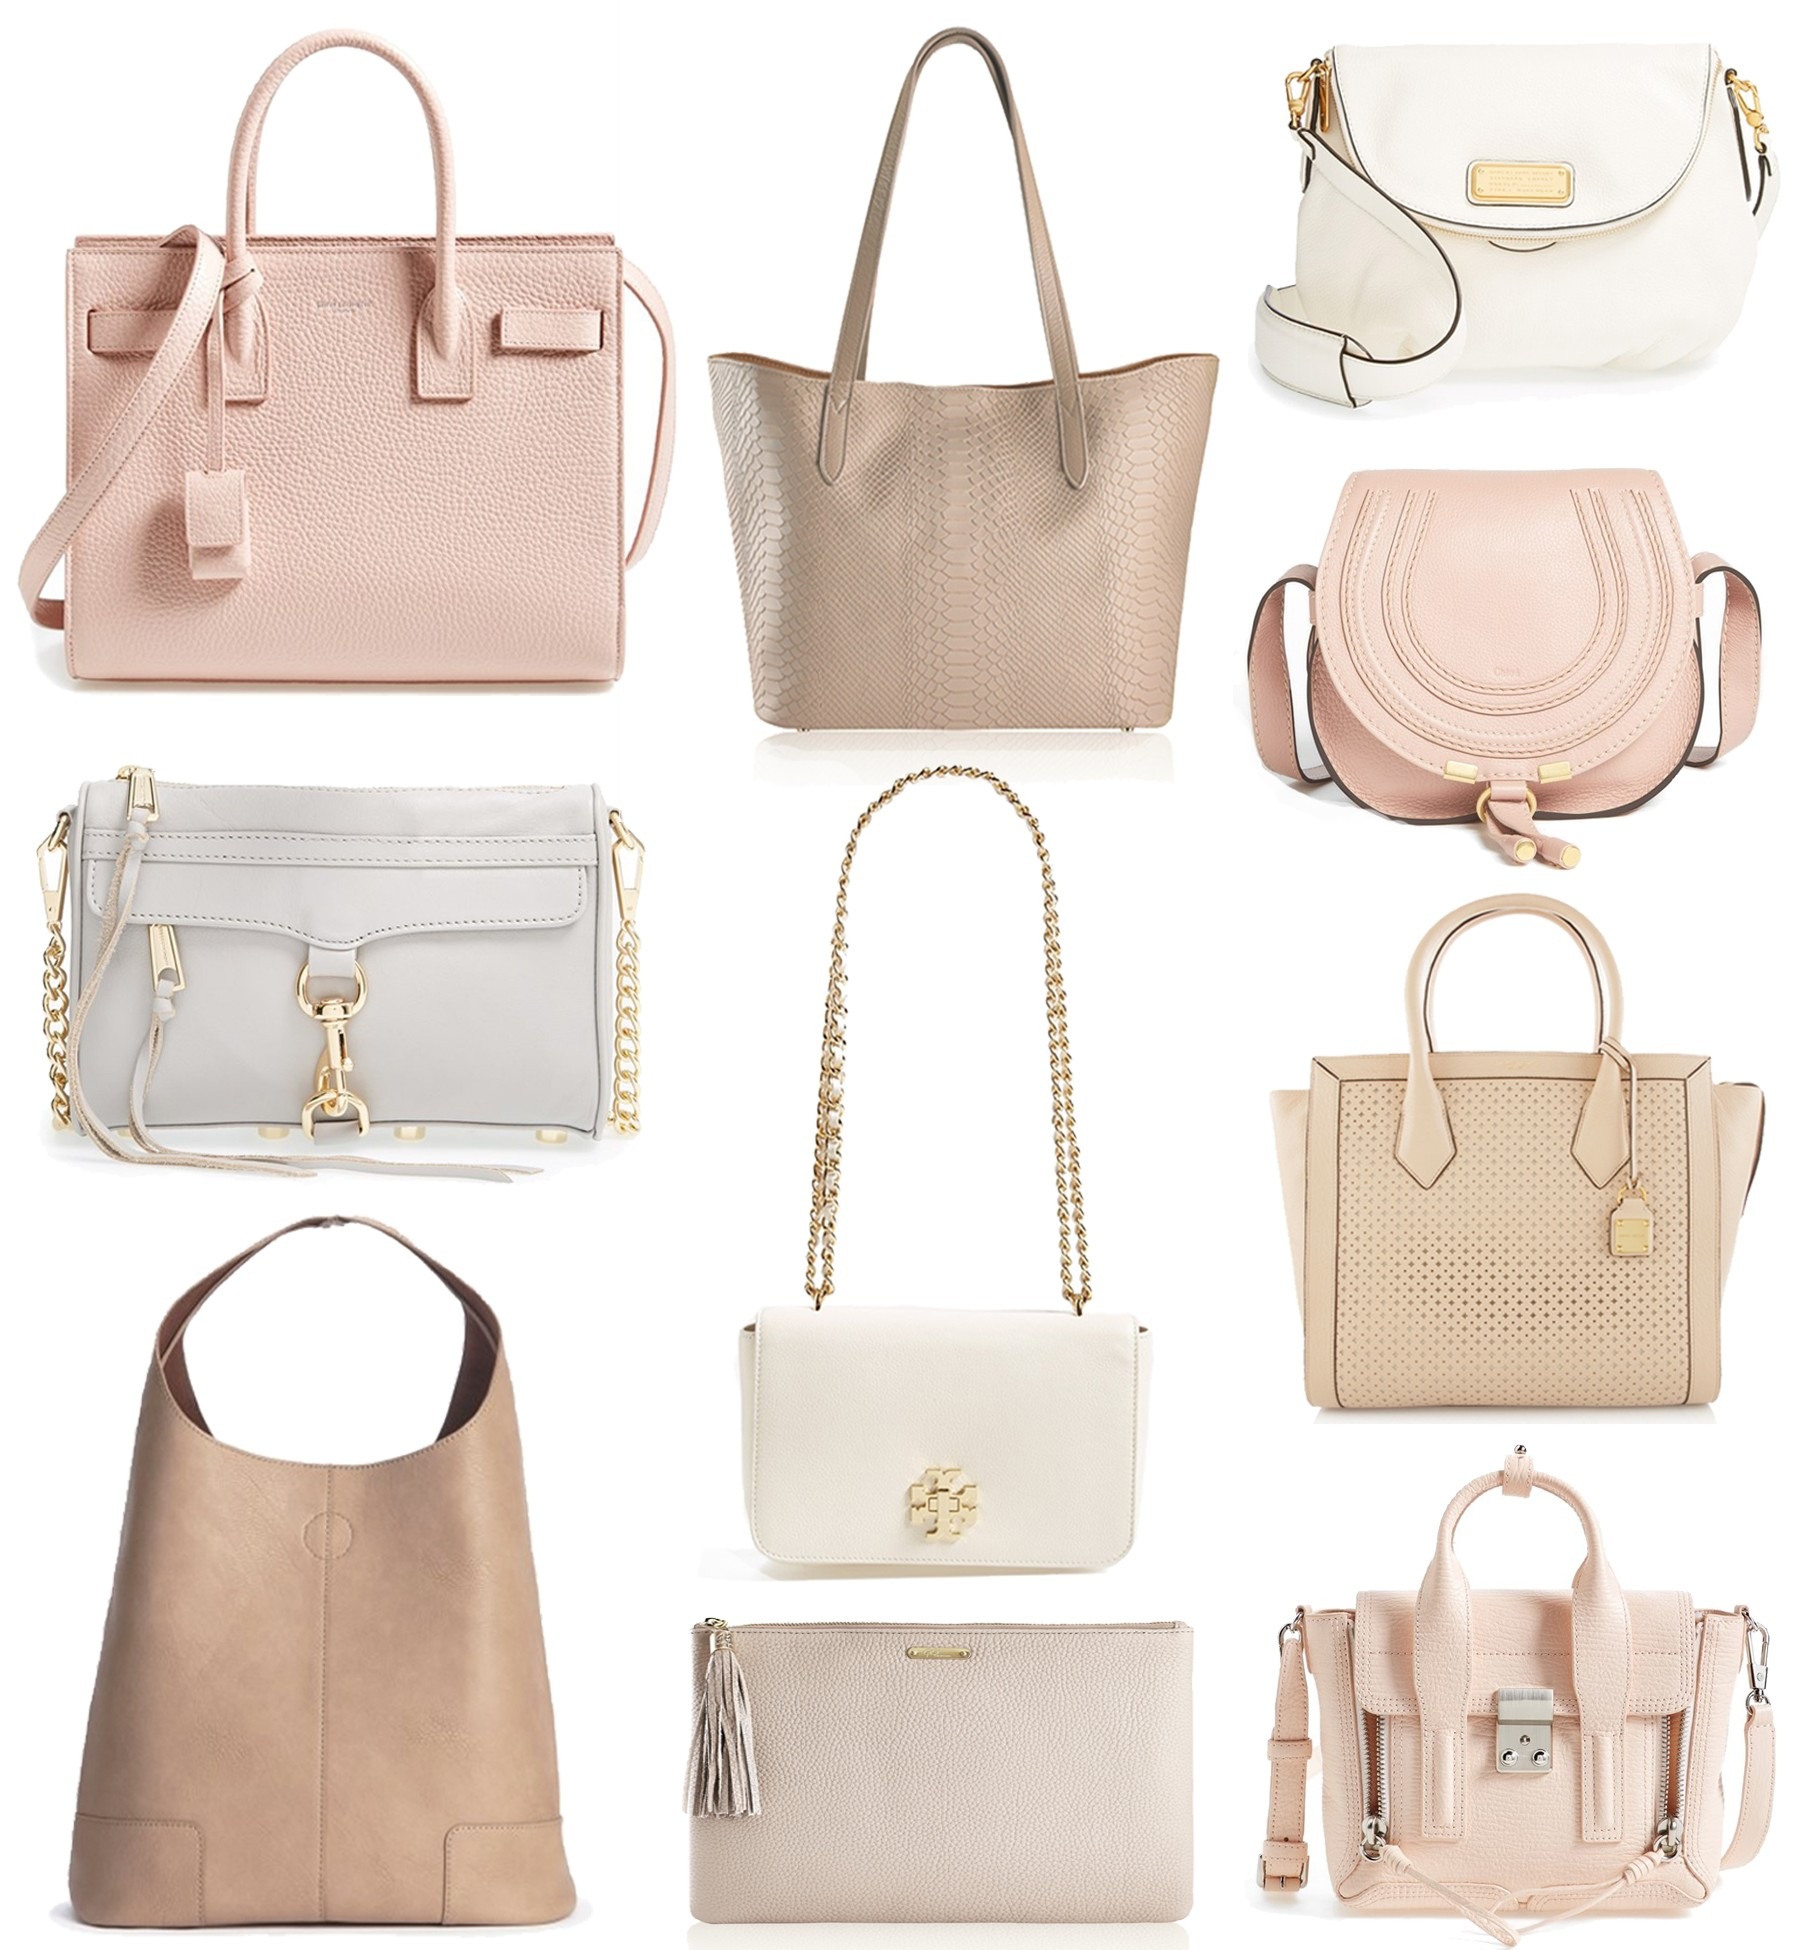 10 Pretty Bags For Spring